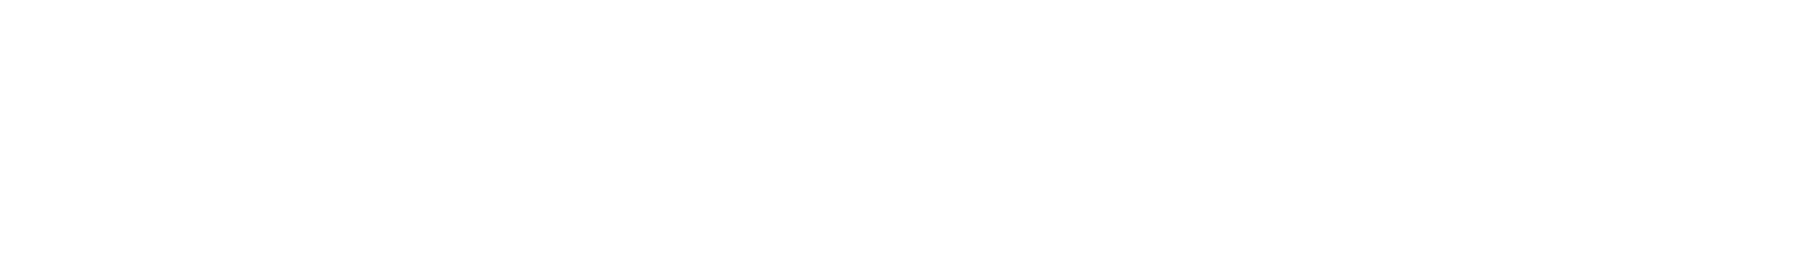 veh1 cutted sounds   053